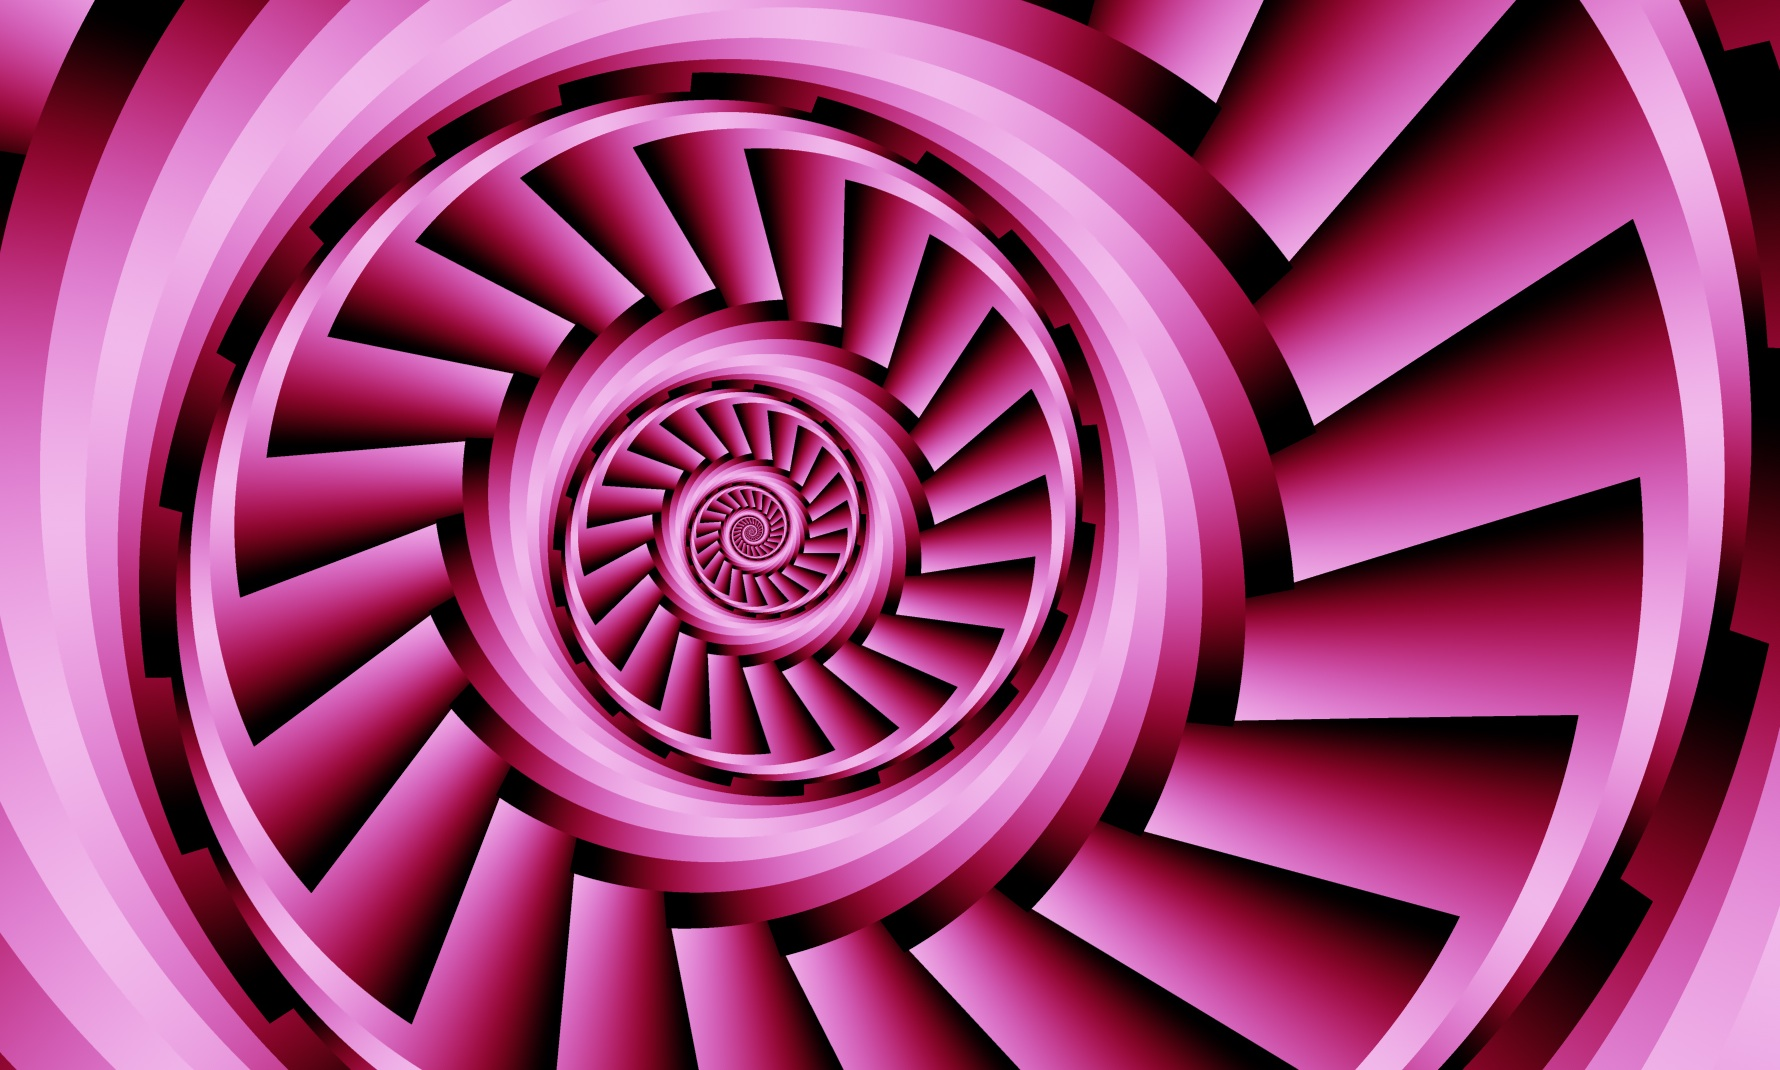 Dilemmas, confusion and the spiral path of growth